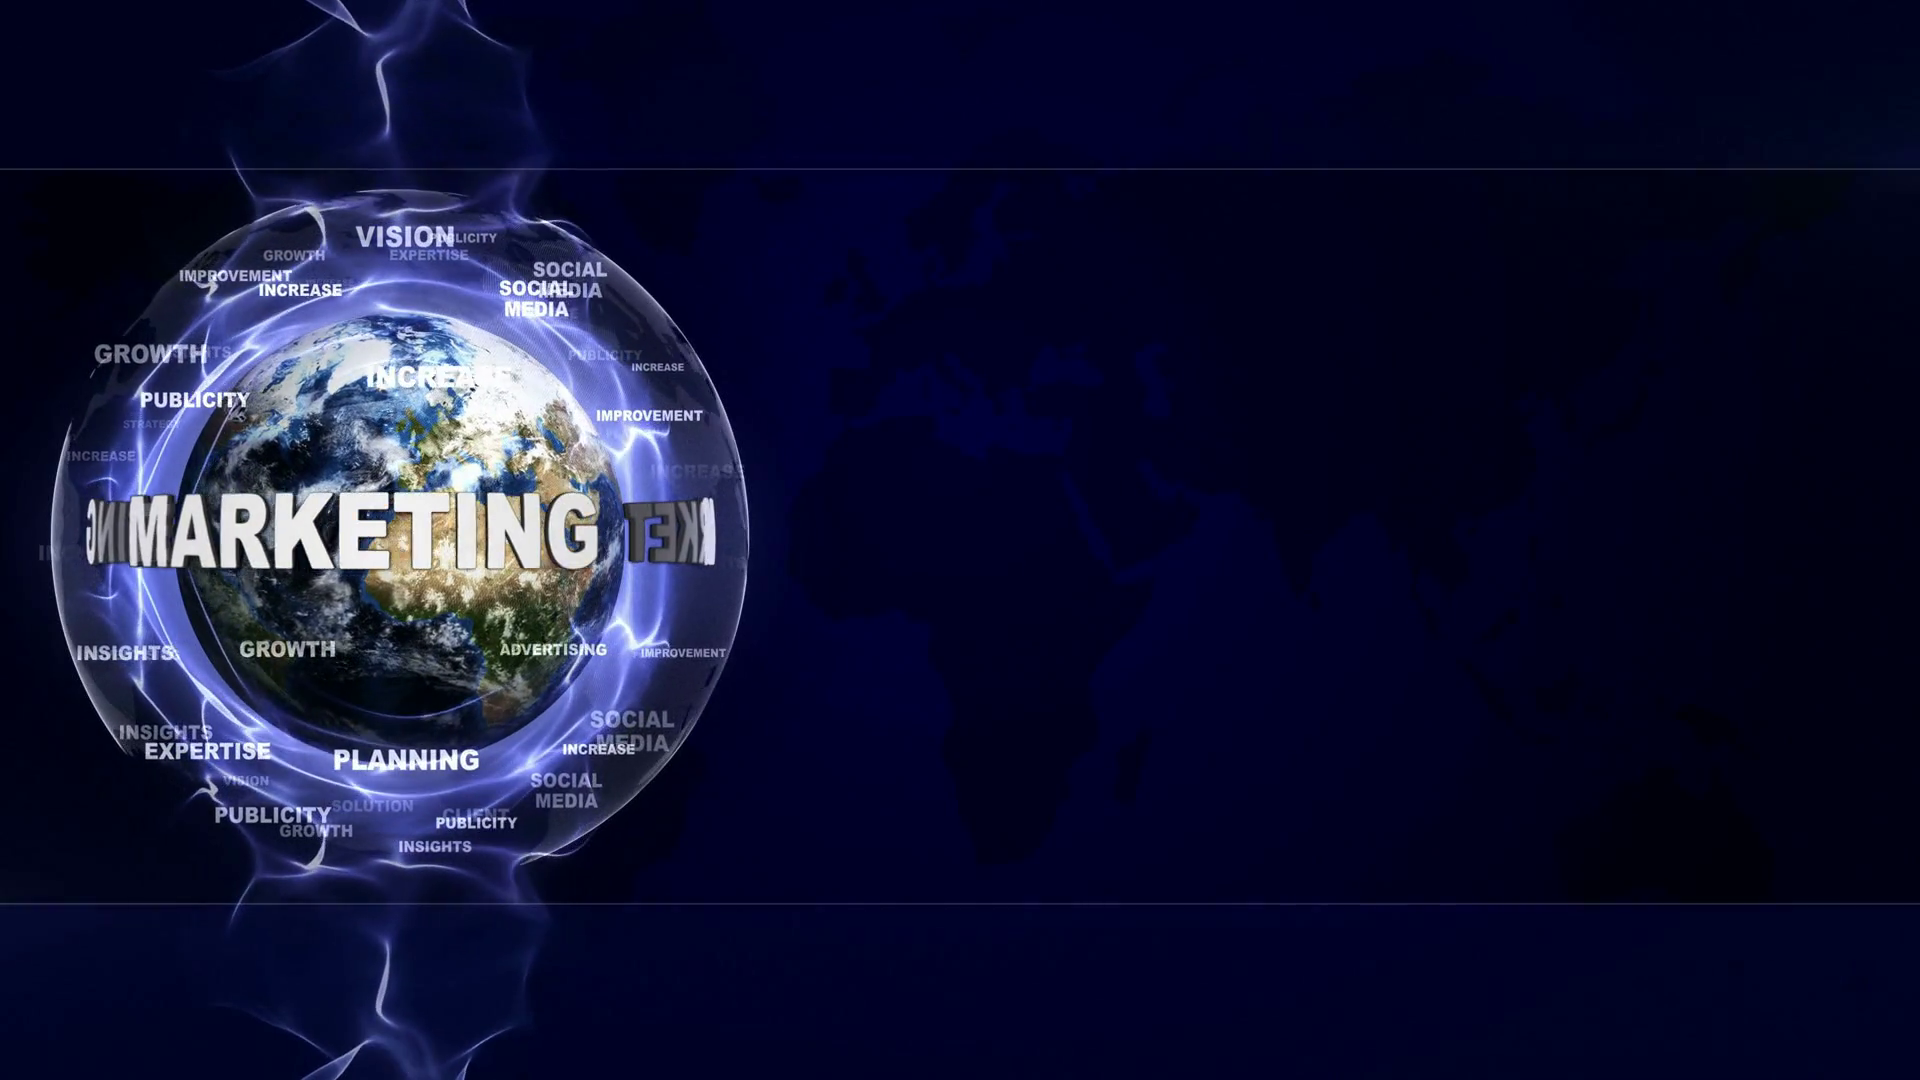 MARKETING Text Animation and Earth with Keywords Background Loop 1920x1080